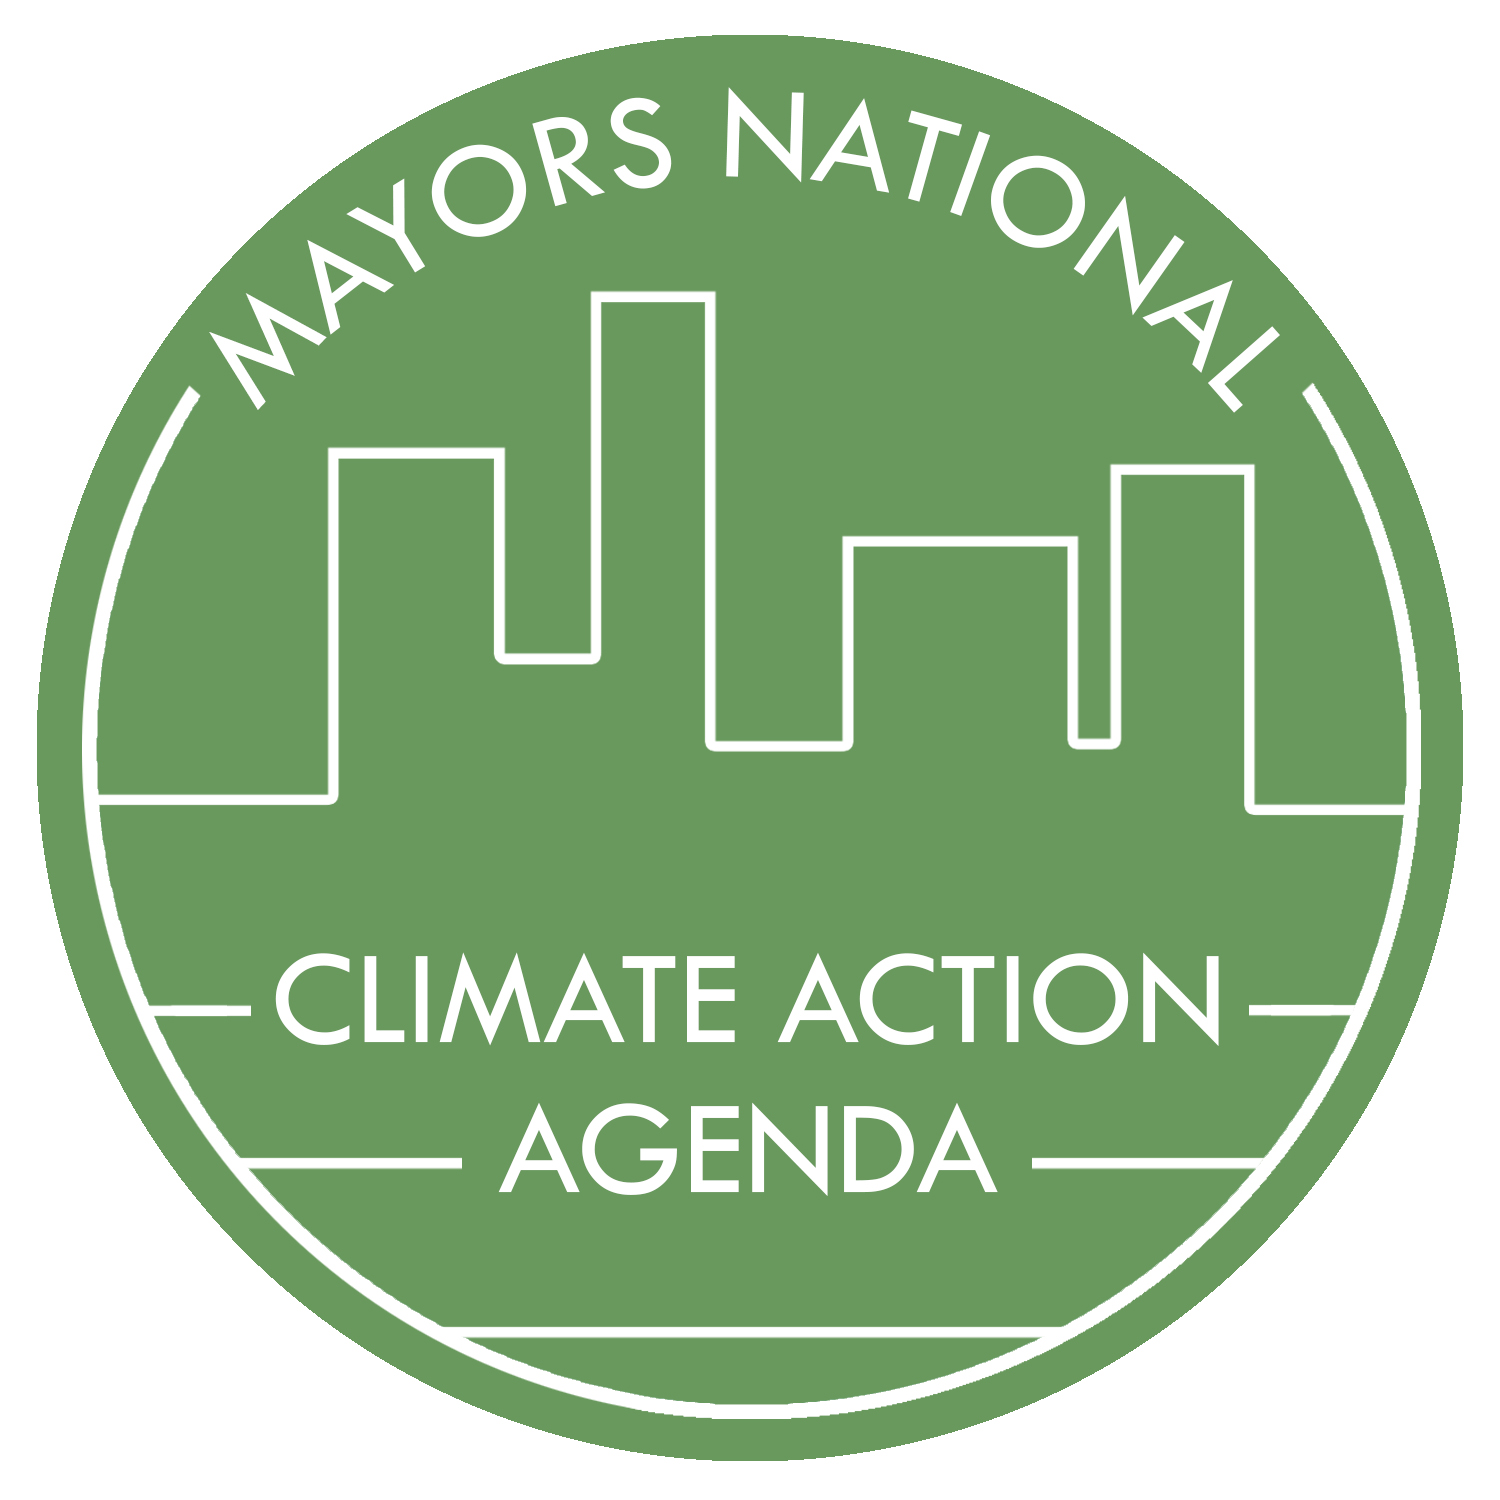 Mayors National Climate Action Agenda